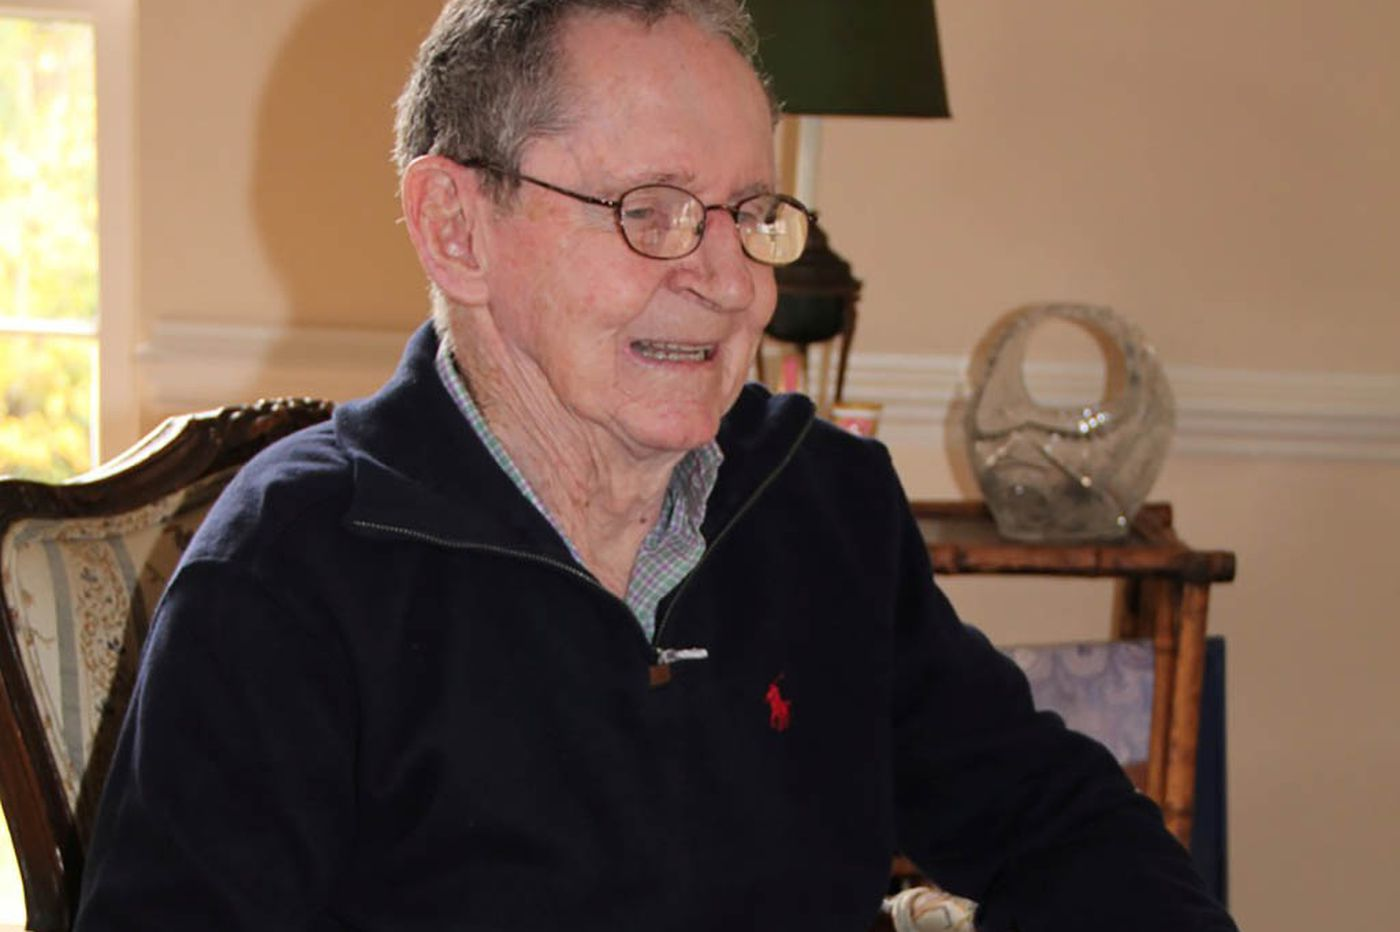 James W. Finegan, 85, golf authority